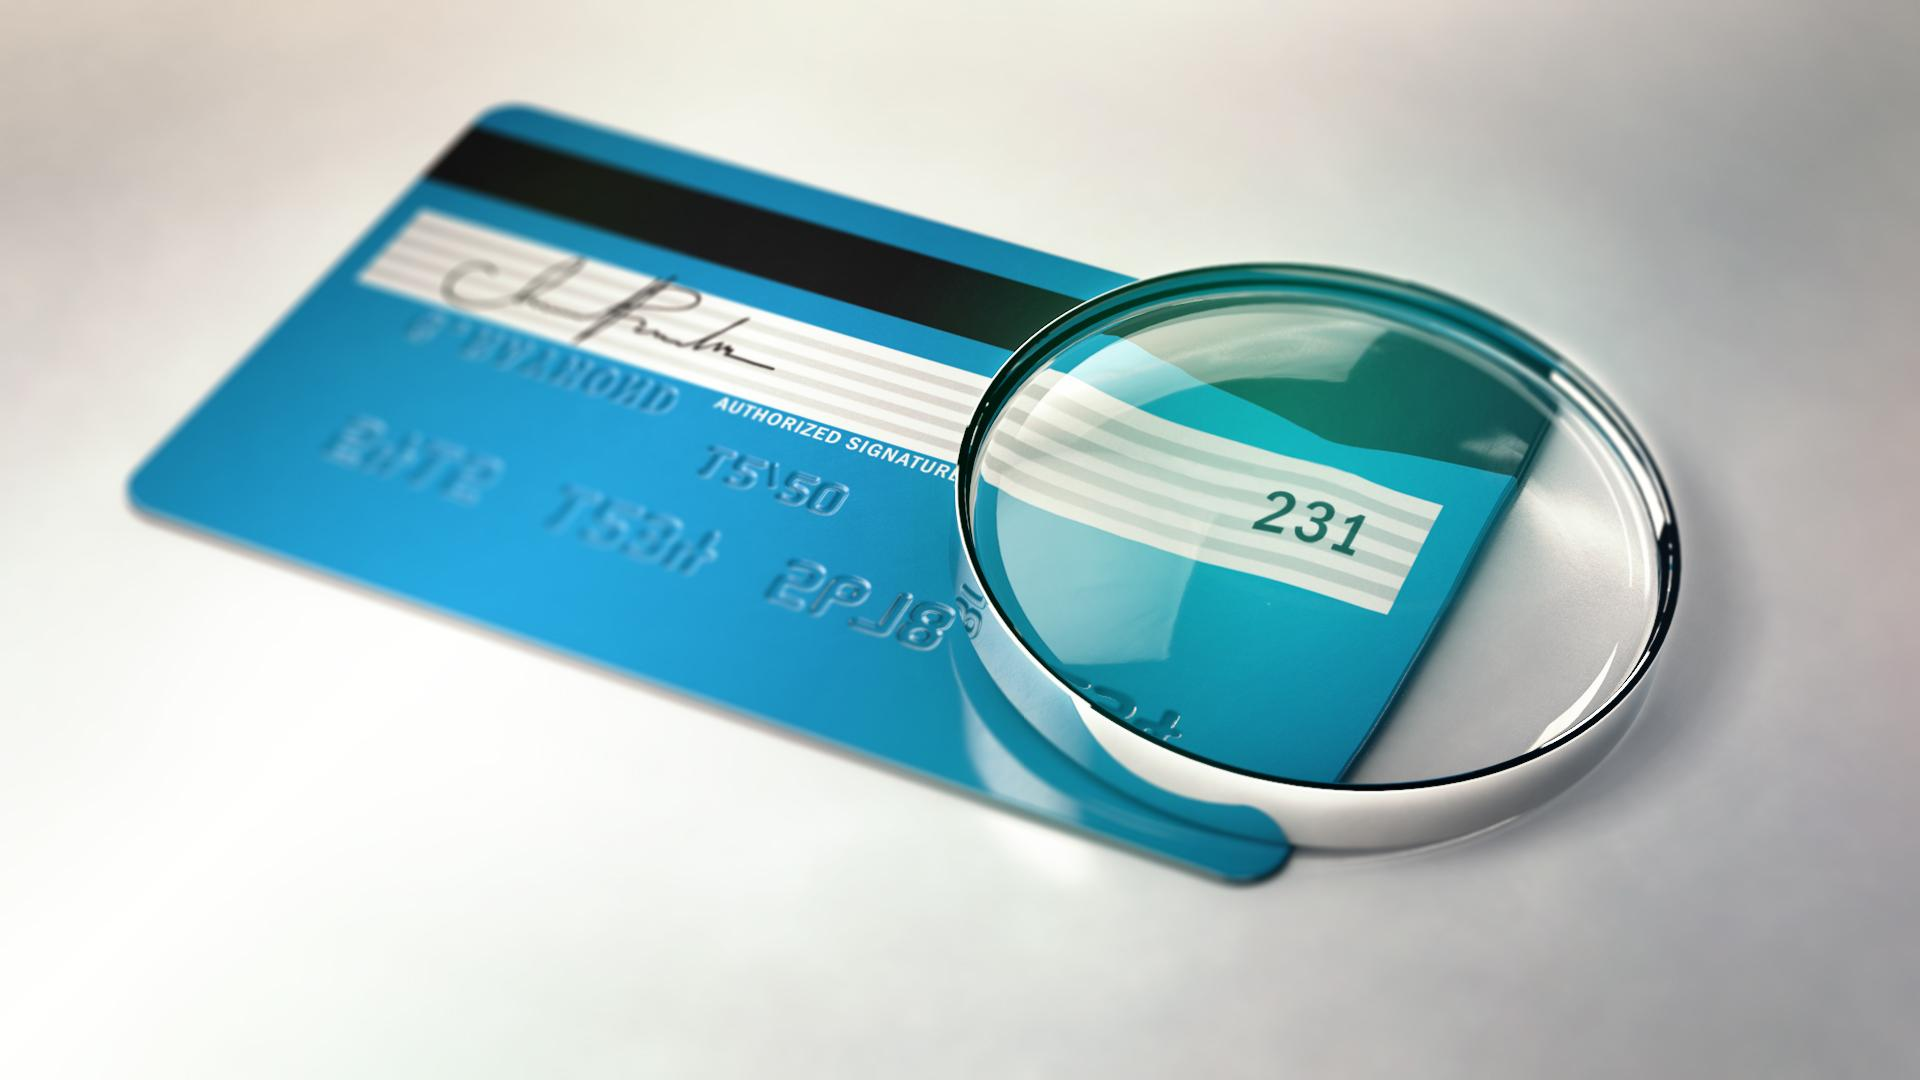 The basic guide about credit cards